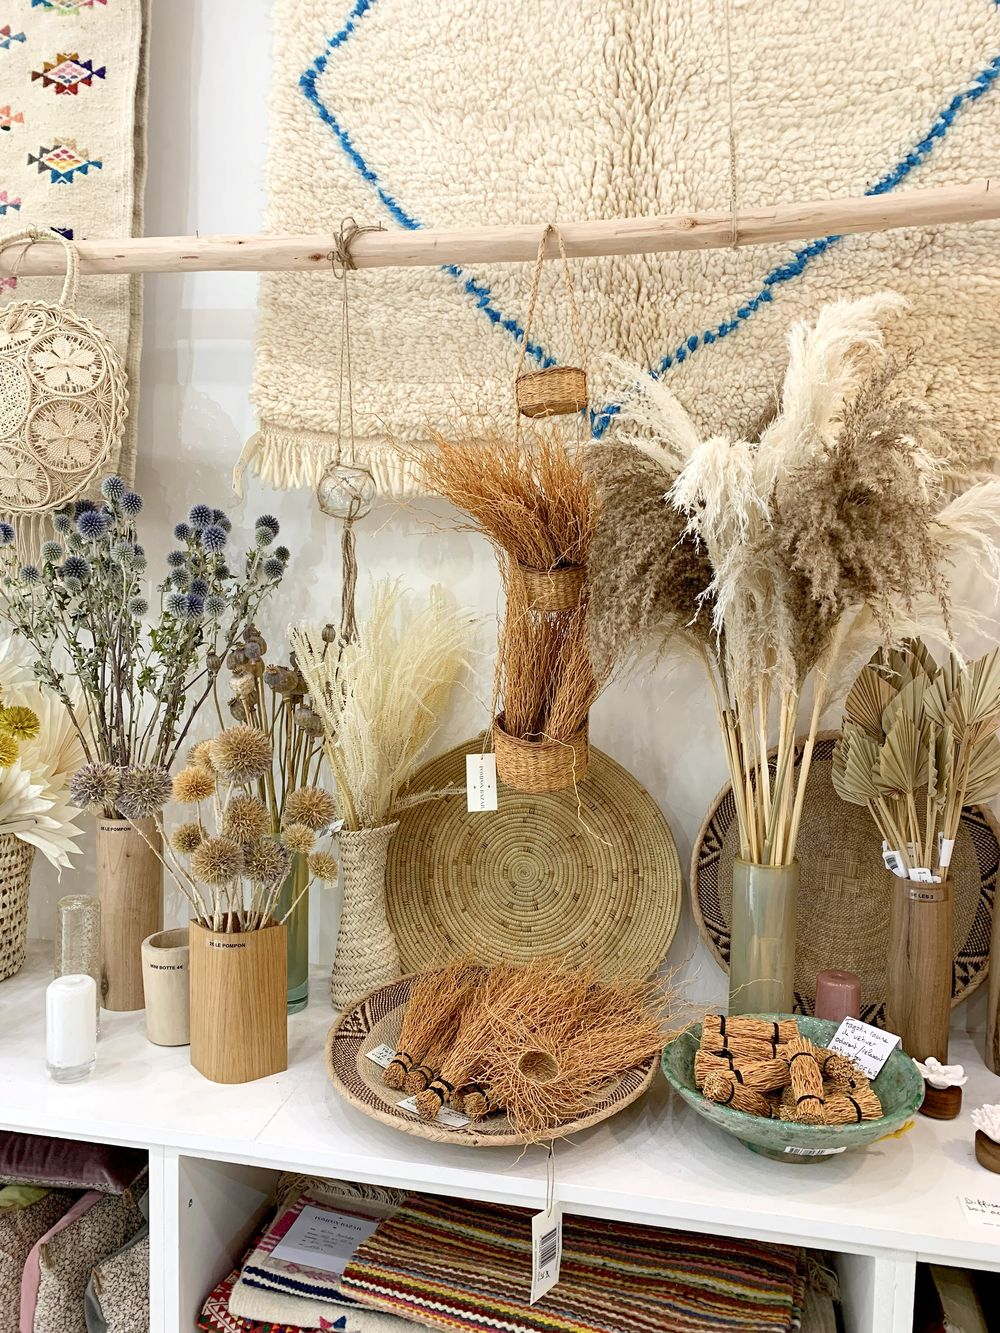 Pompon Bazar - Dried Flowers In Paris